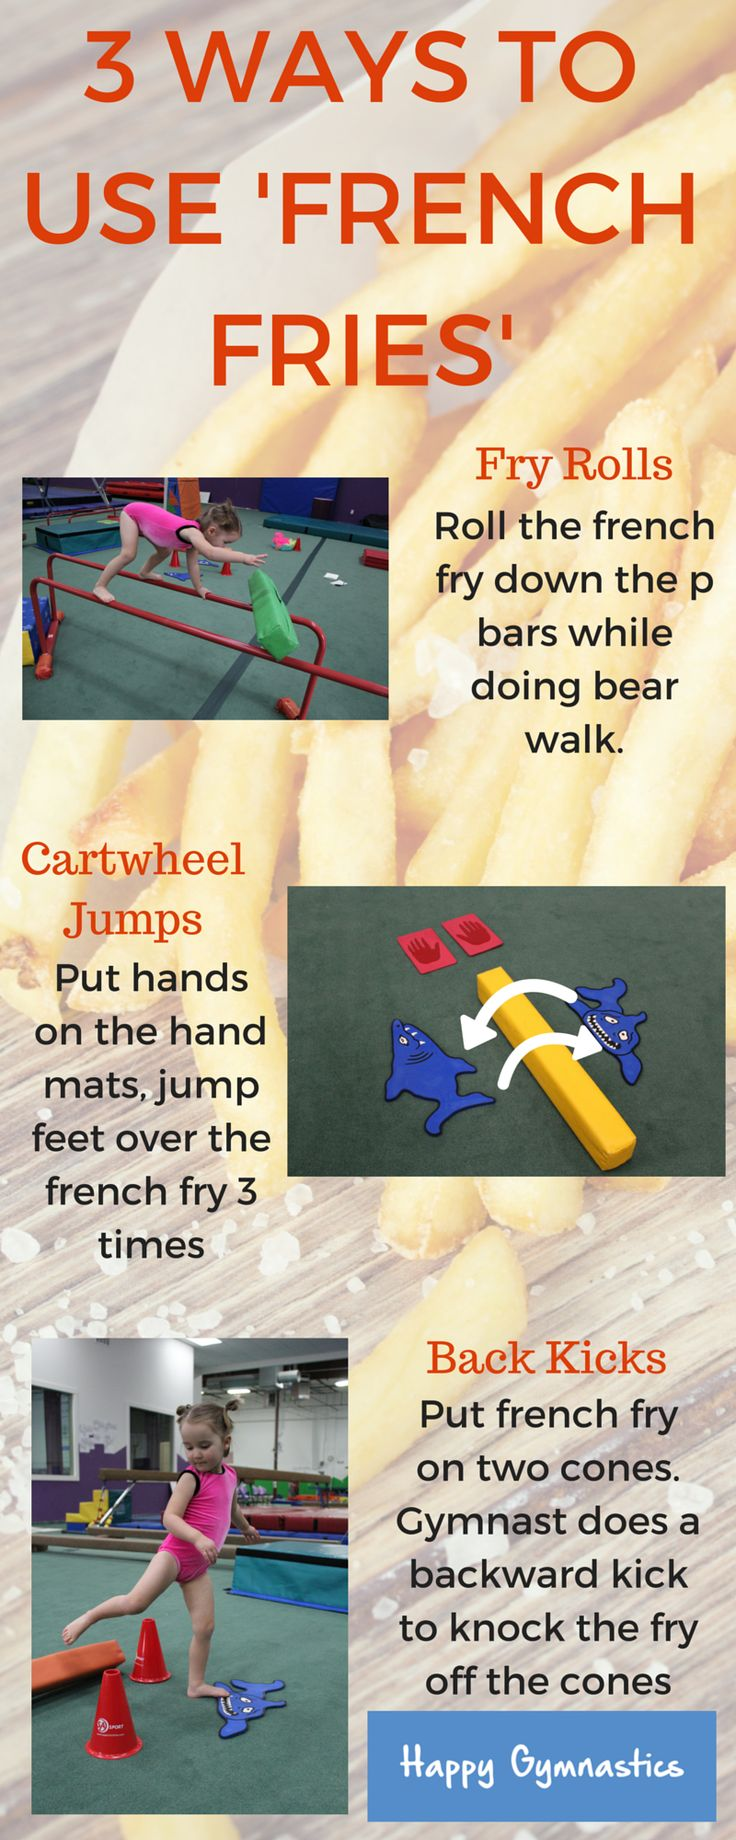 New ideas for those french fries/speed bumps you've got laying around the gym!  Get more fresh preschool ideas at www.happygymnastics.com